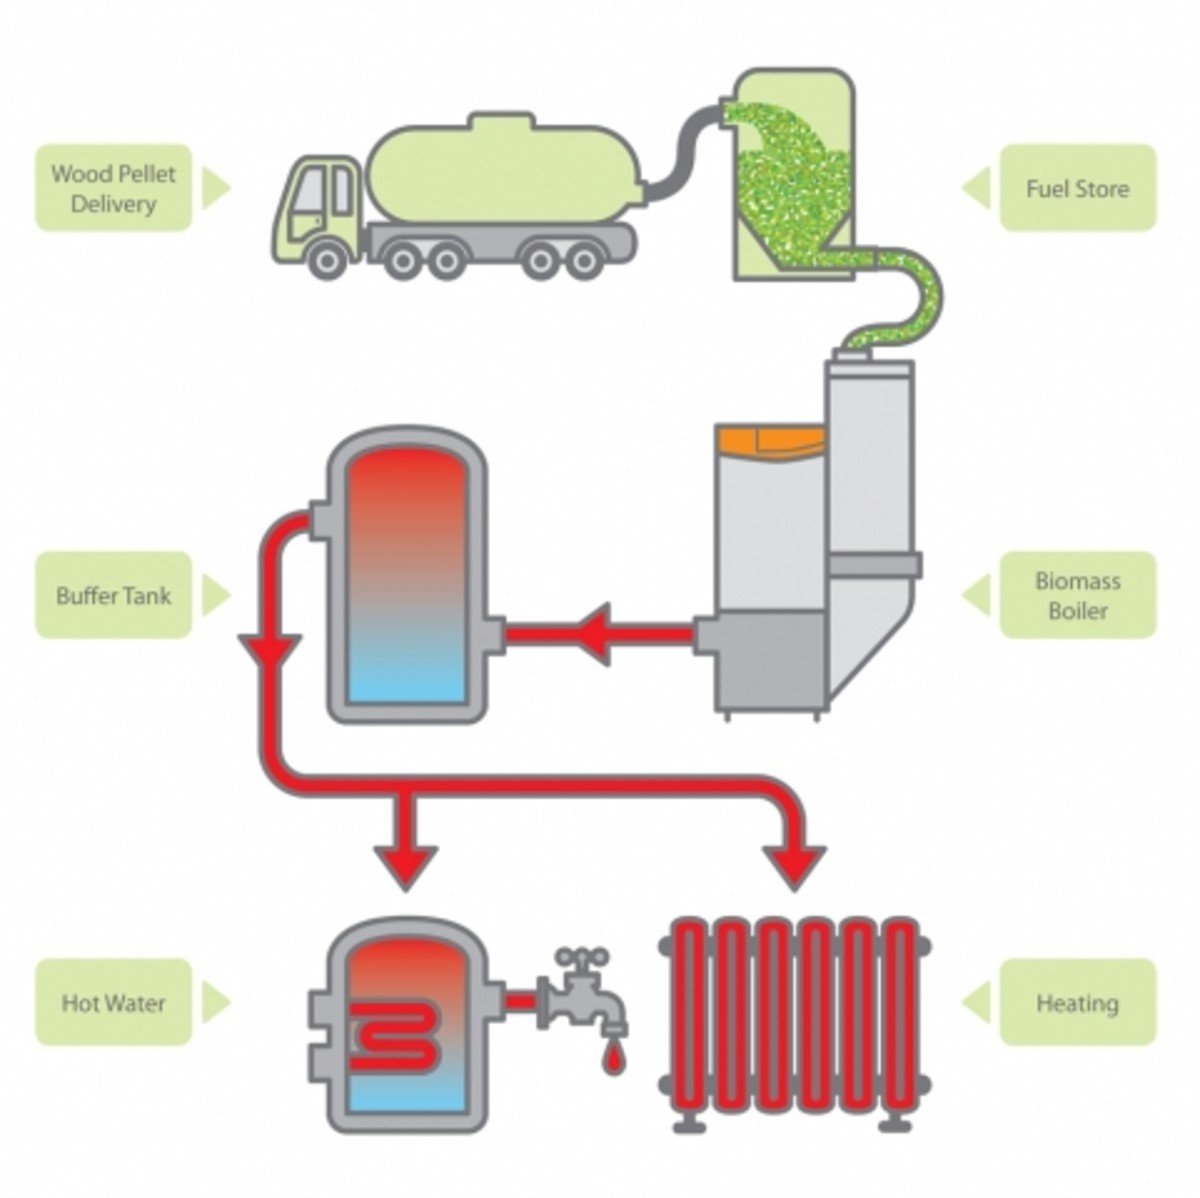 hight resolution of wood pellet delivery to consumption and output flow chart diagram